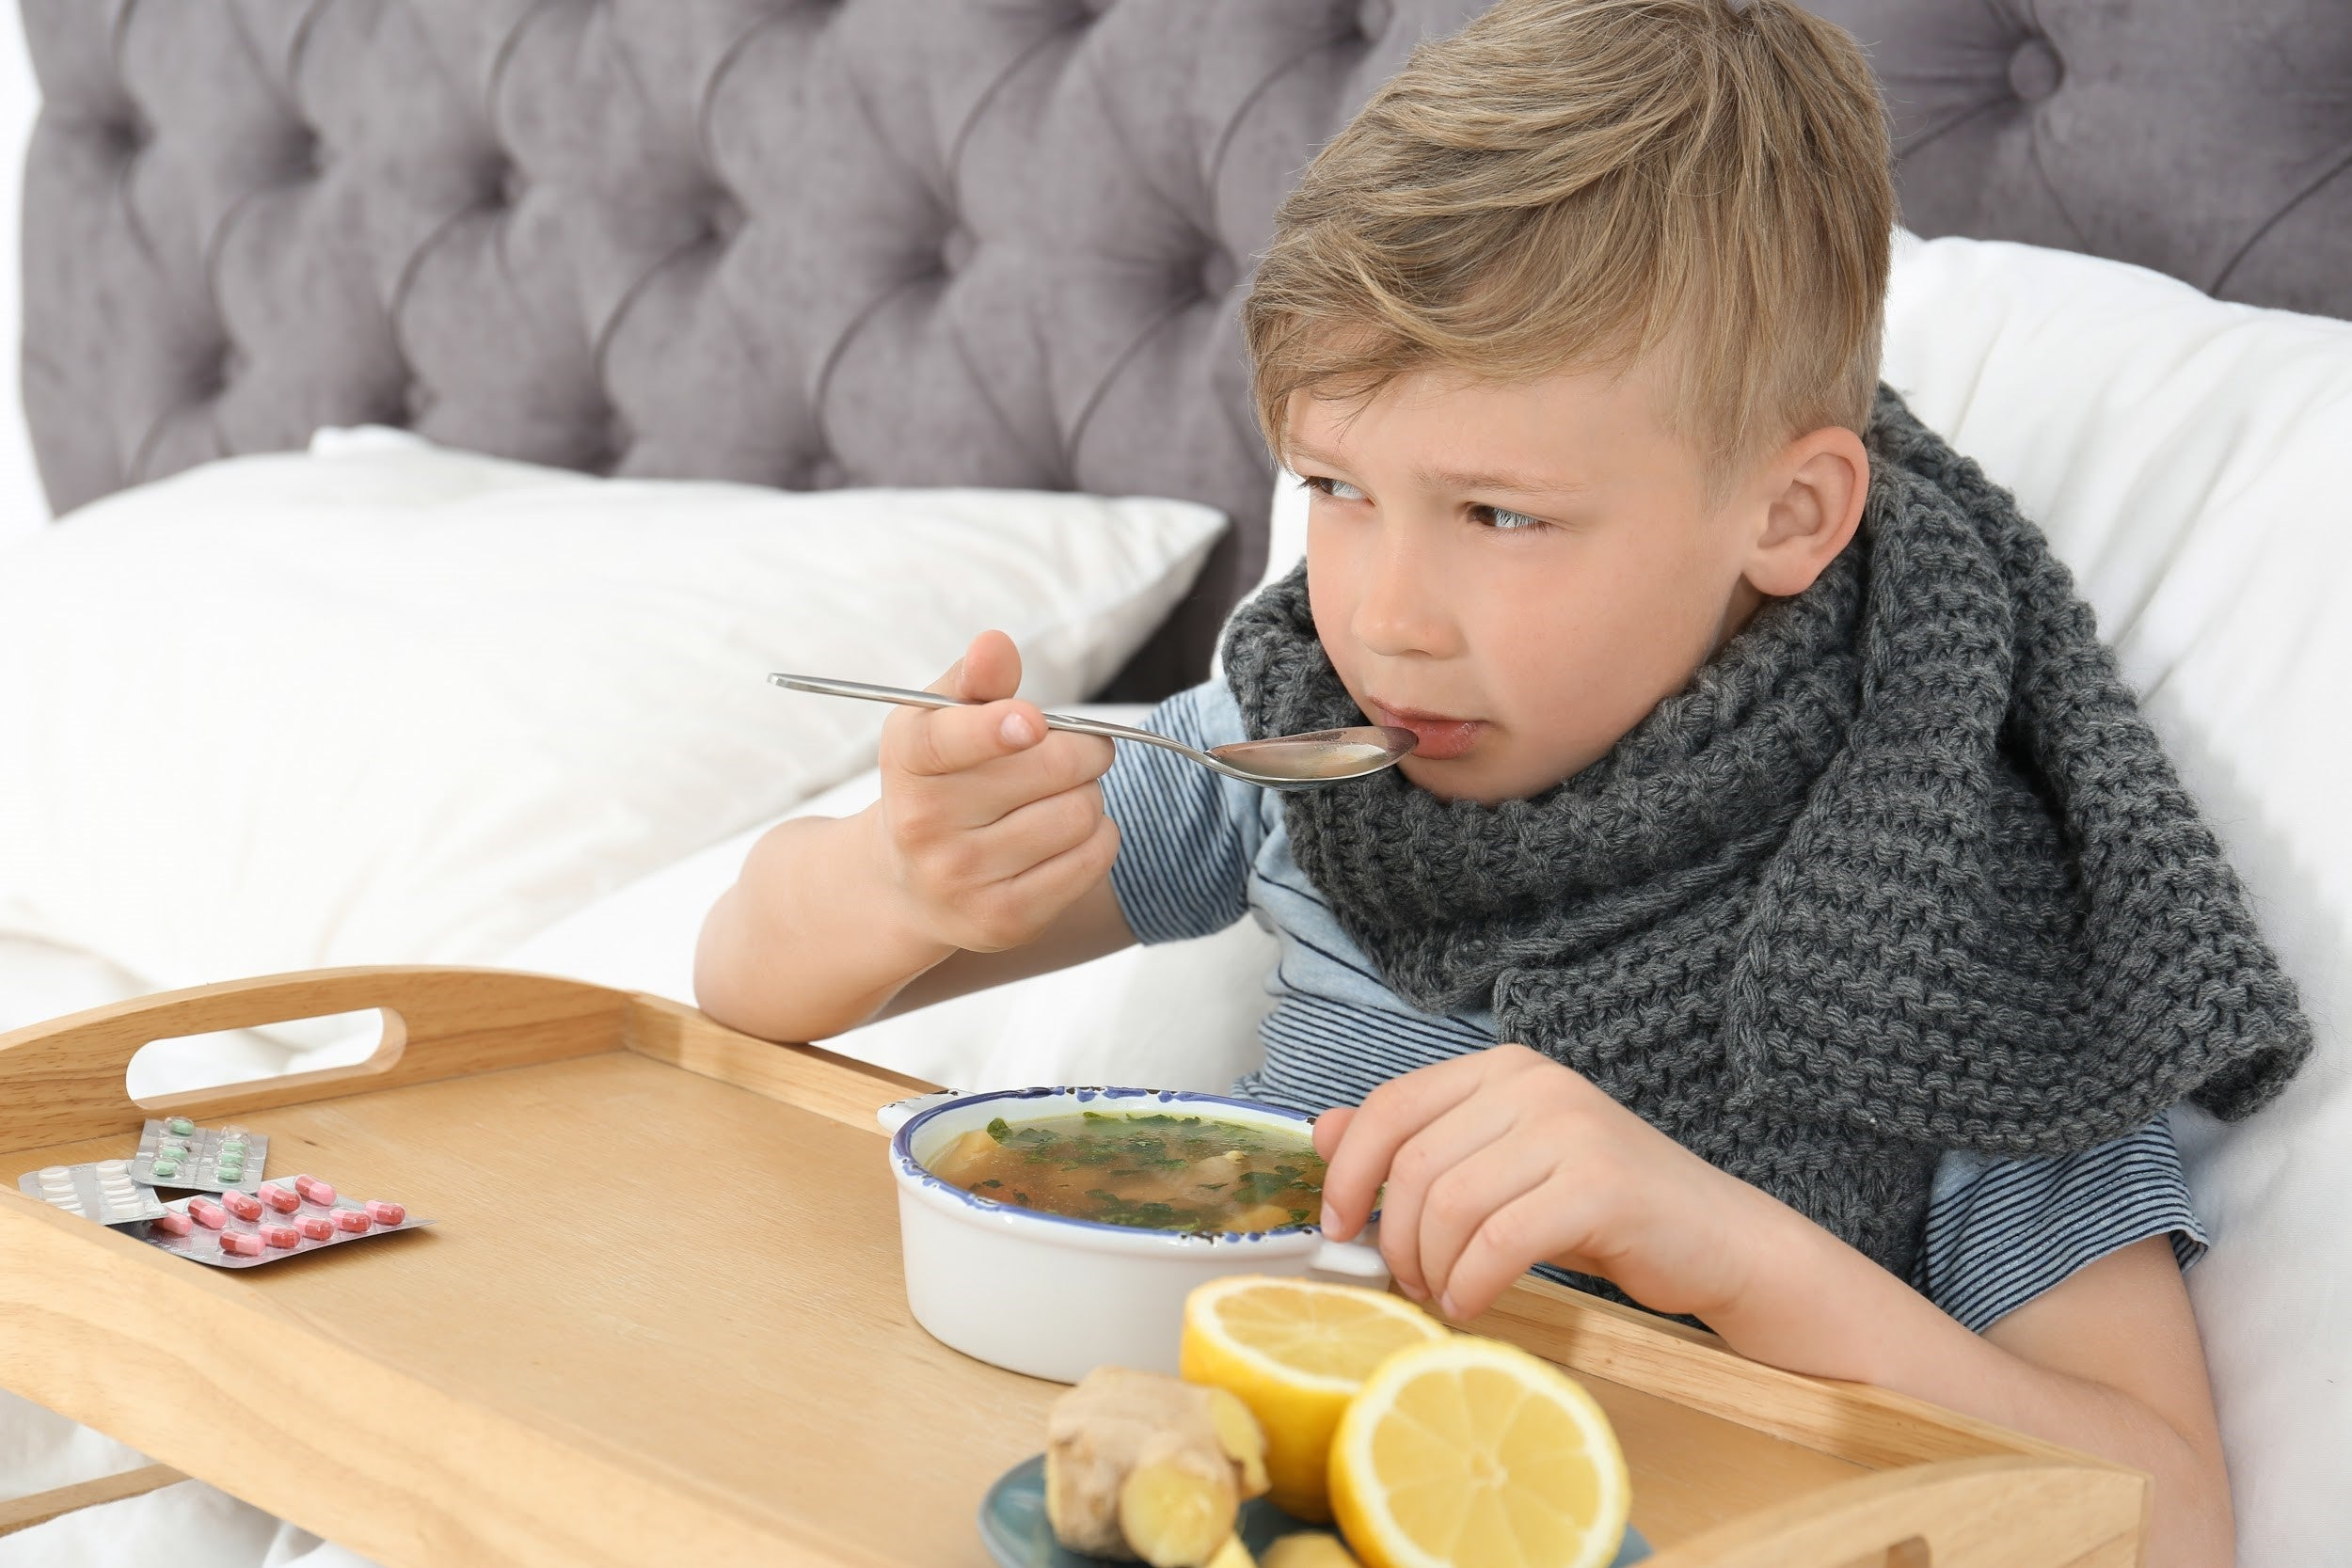 best foods for sick kids by illness - chicken noodle soup for cold and flu